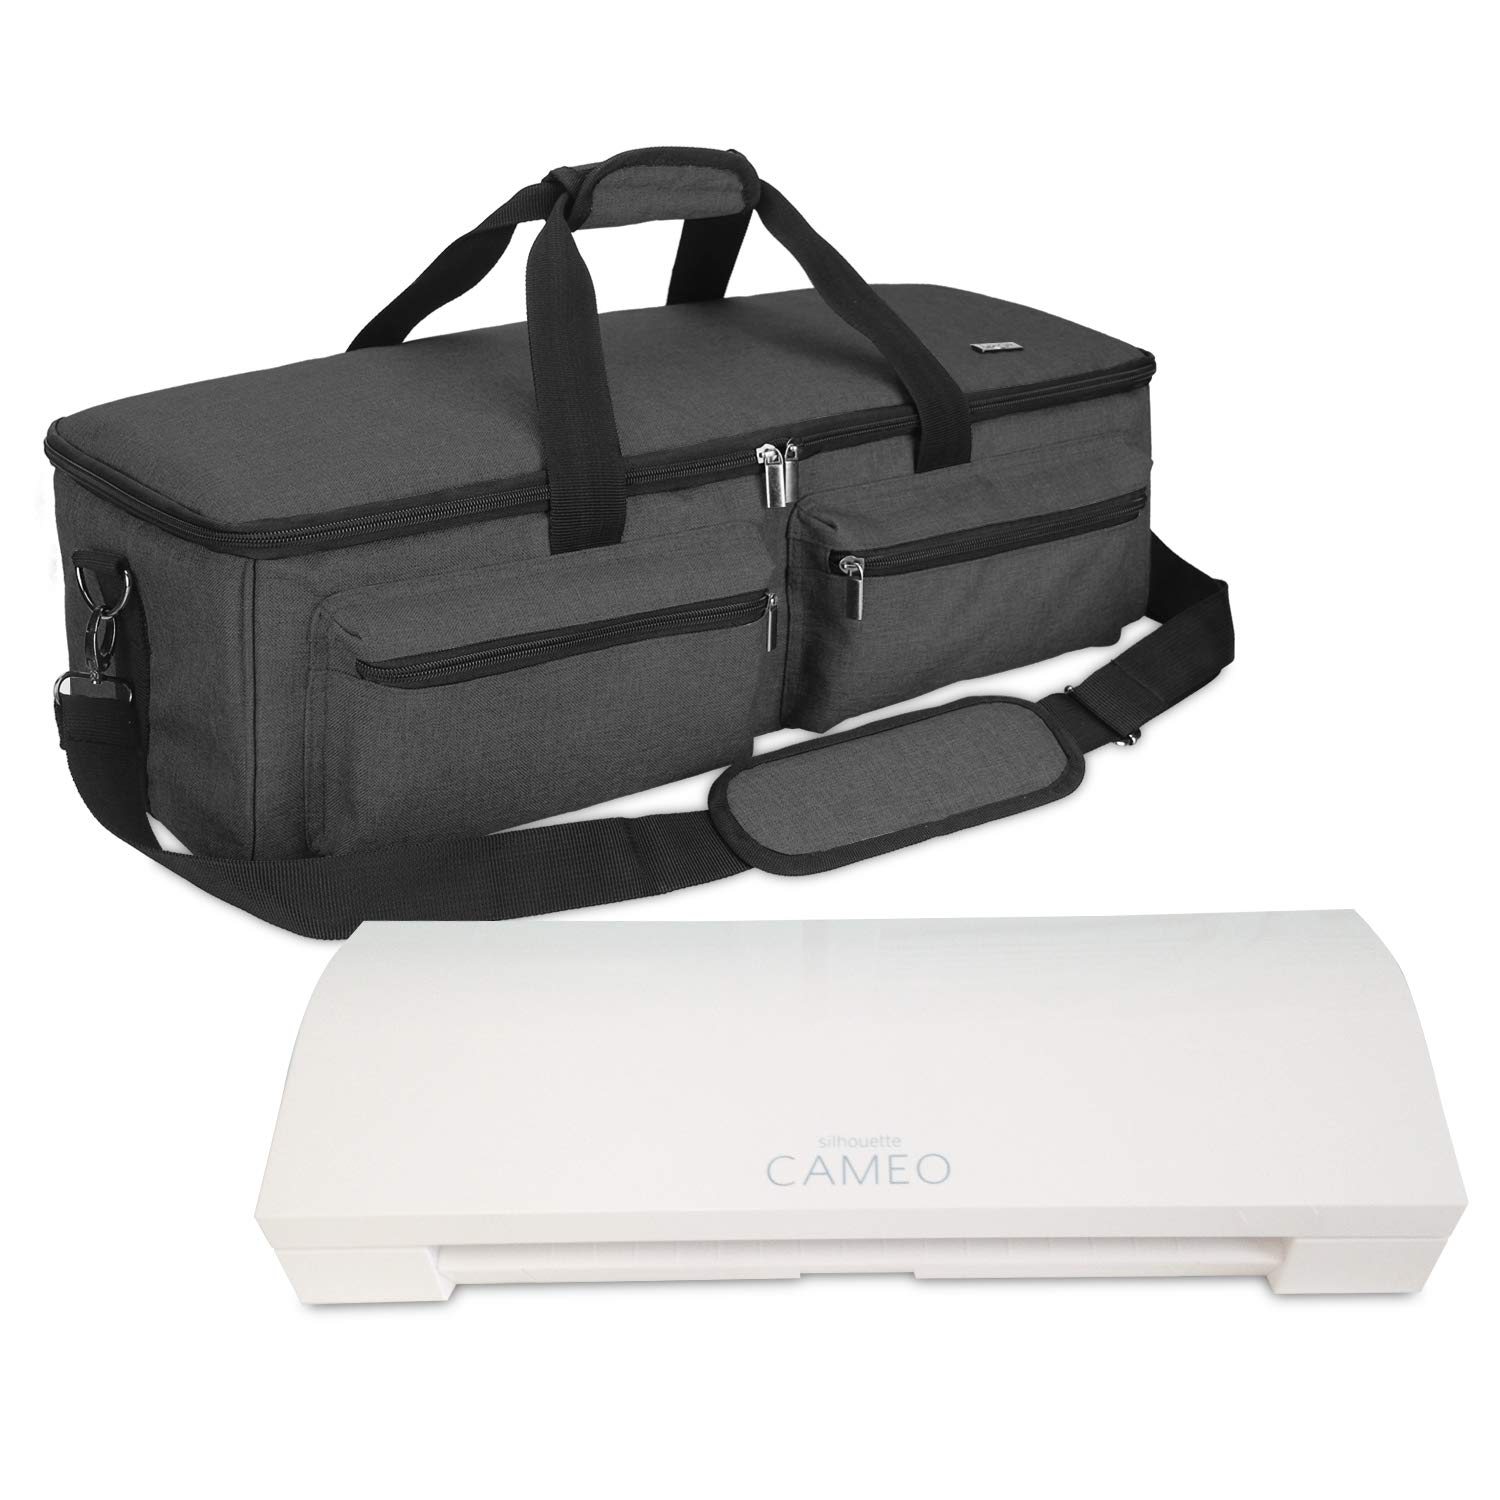 Luxja Bag for Silhouette Cameo 3, Carrying Case for Cutting Machine and Accessories, Compatible with Cricut Explore Air (Air2), Cricut Maker and Silhouette Cameo 3, Black (Patent Pending) by LUXJA